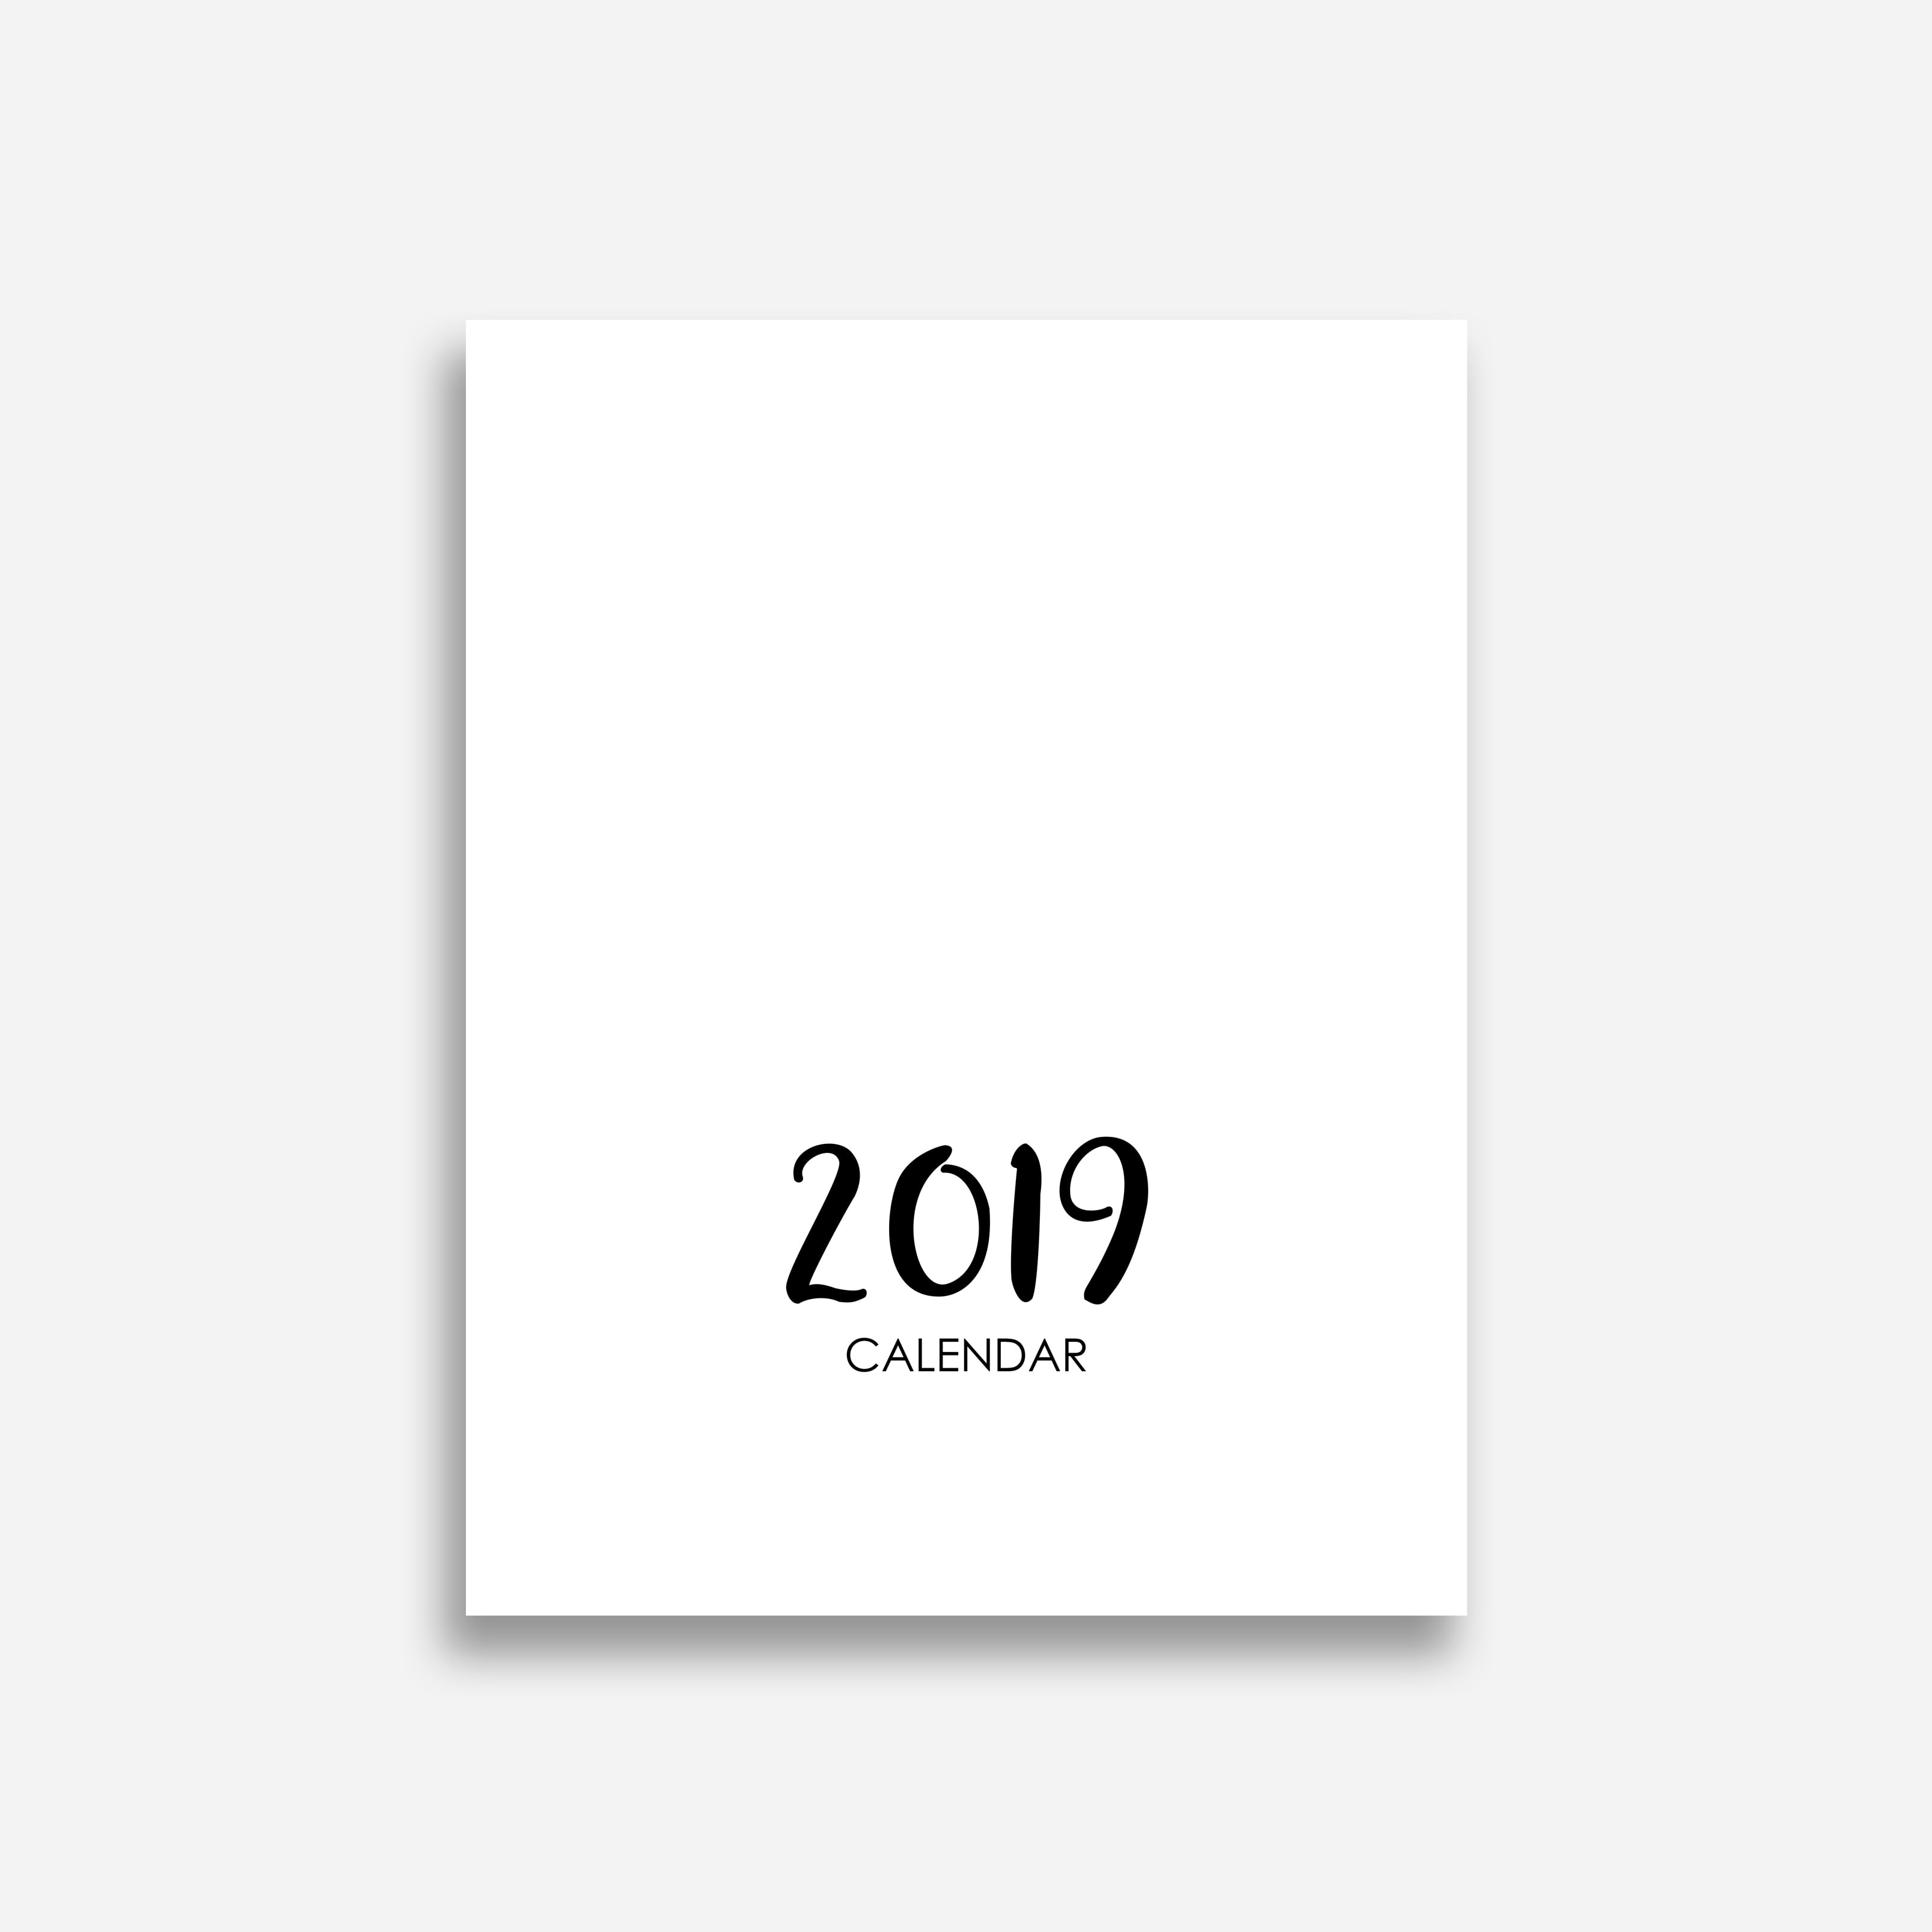 2020 Printable Calendar Template - $9 ONLY - Display cover